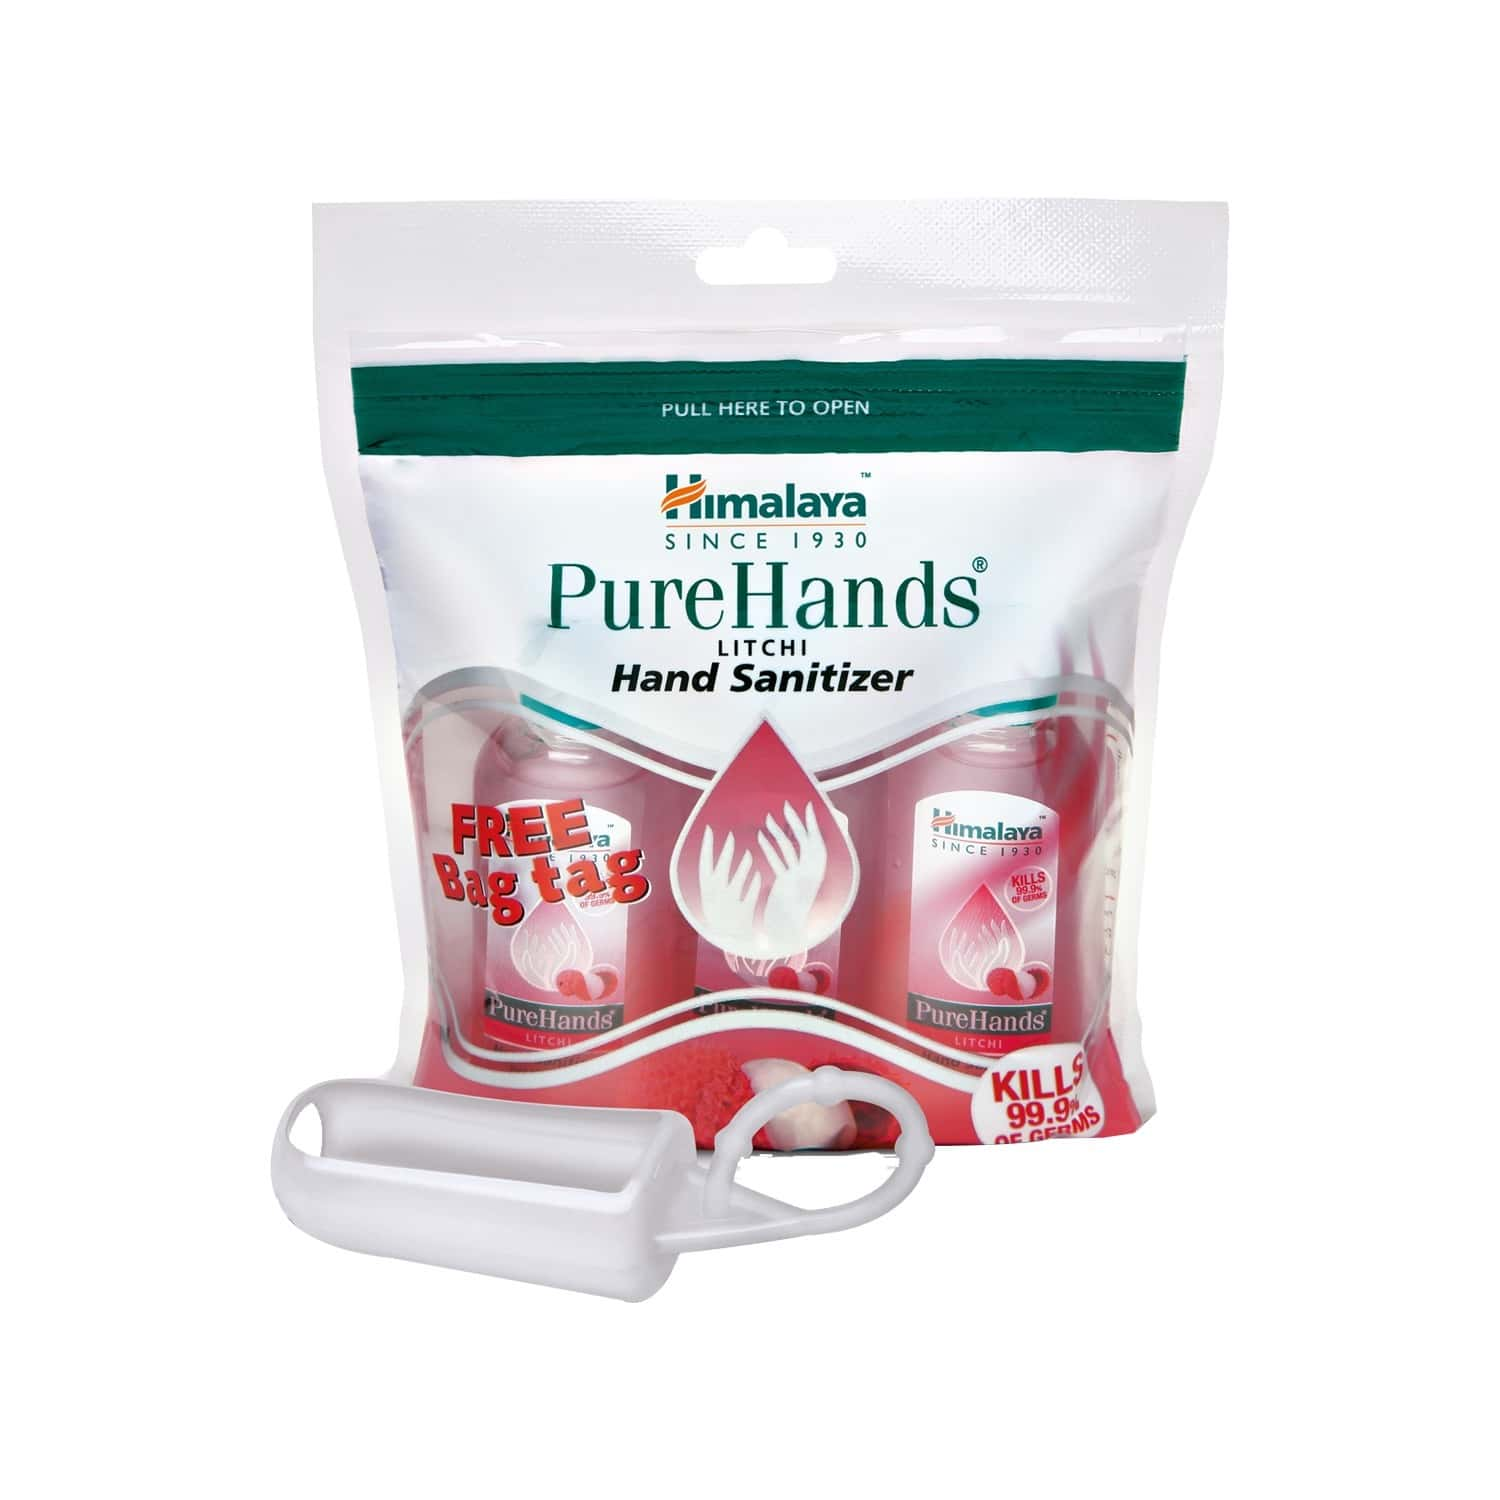 Himalaya Wellness Purehands (3x30 Ml - Litchi) - Hand Sanitizer